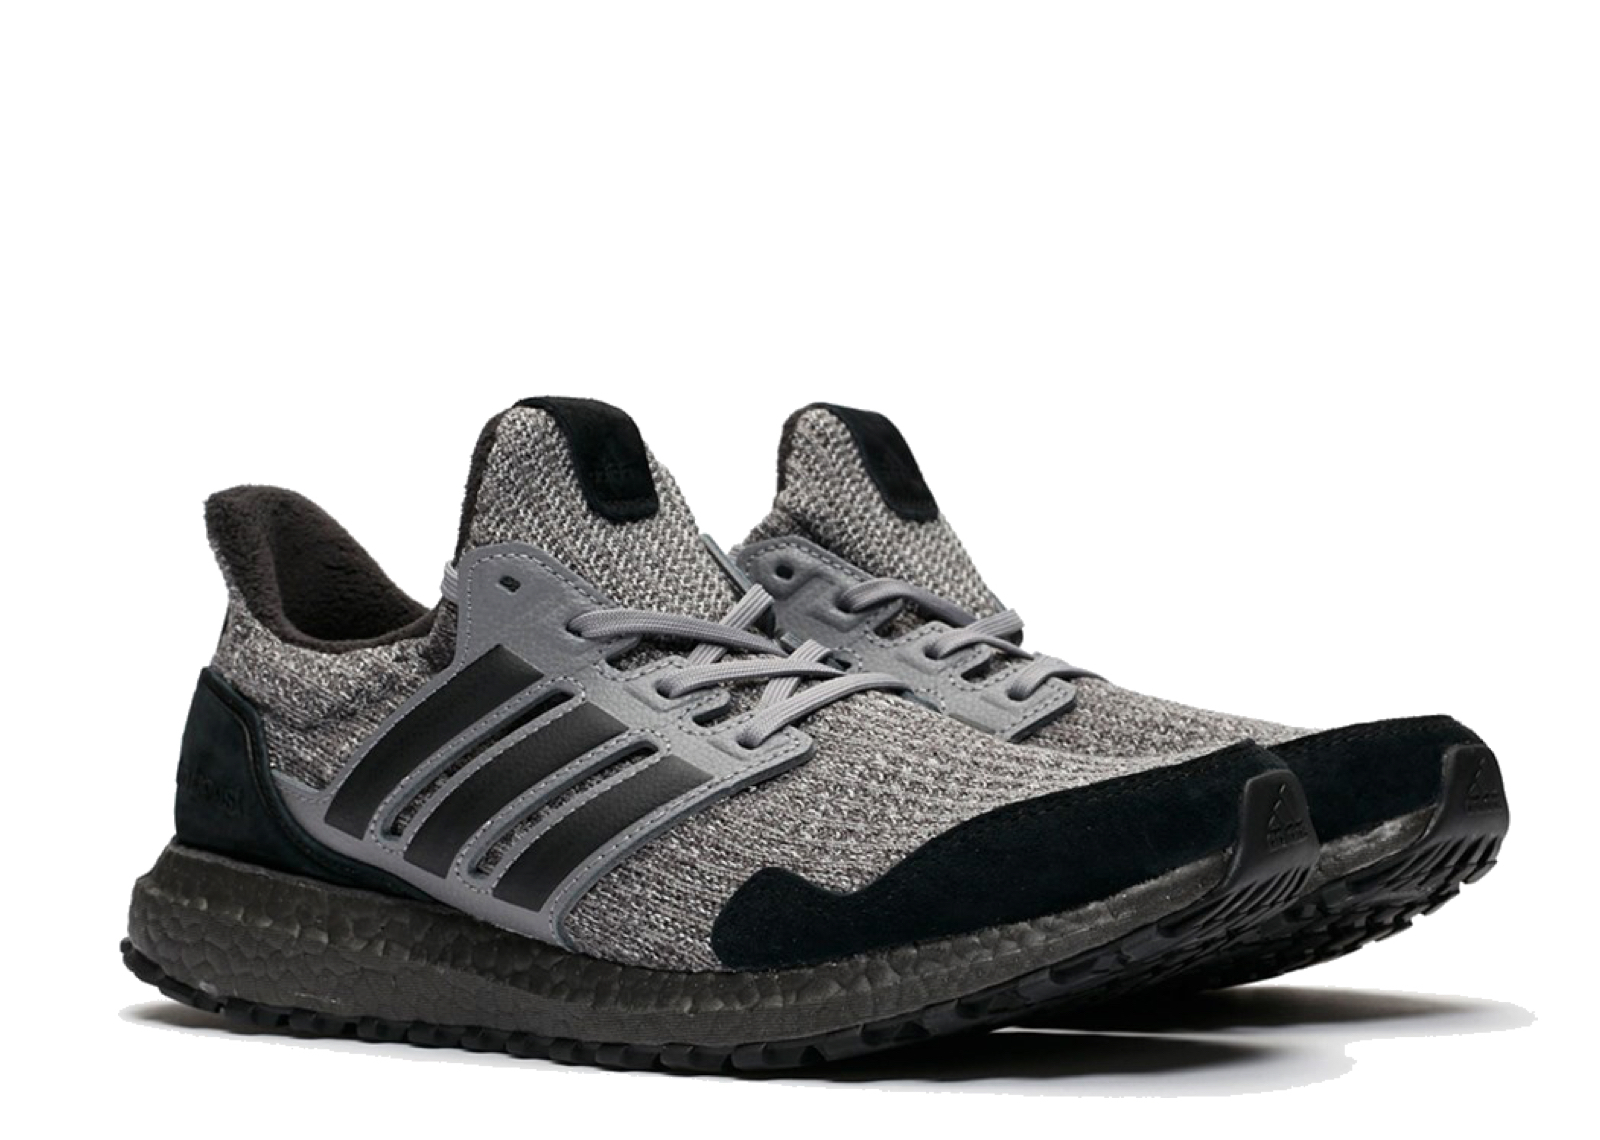 1c91c3fbdf6b1 adidas Ultra Boost 4.0 Game of Thrones House Stark - 1